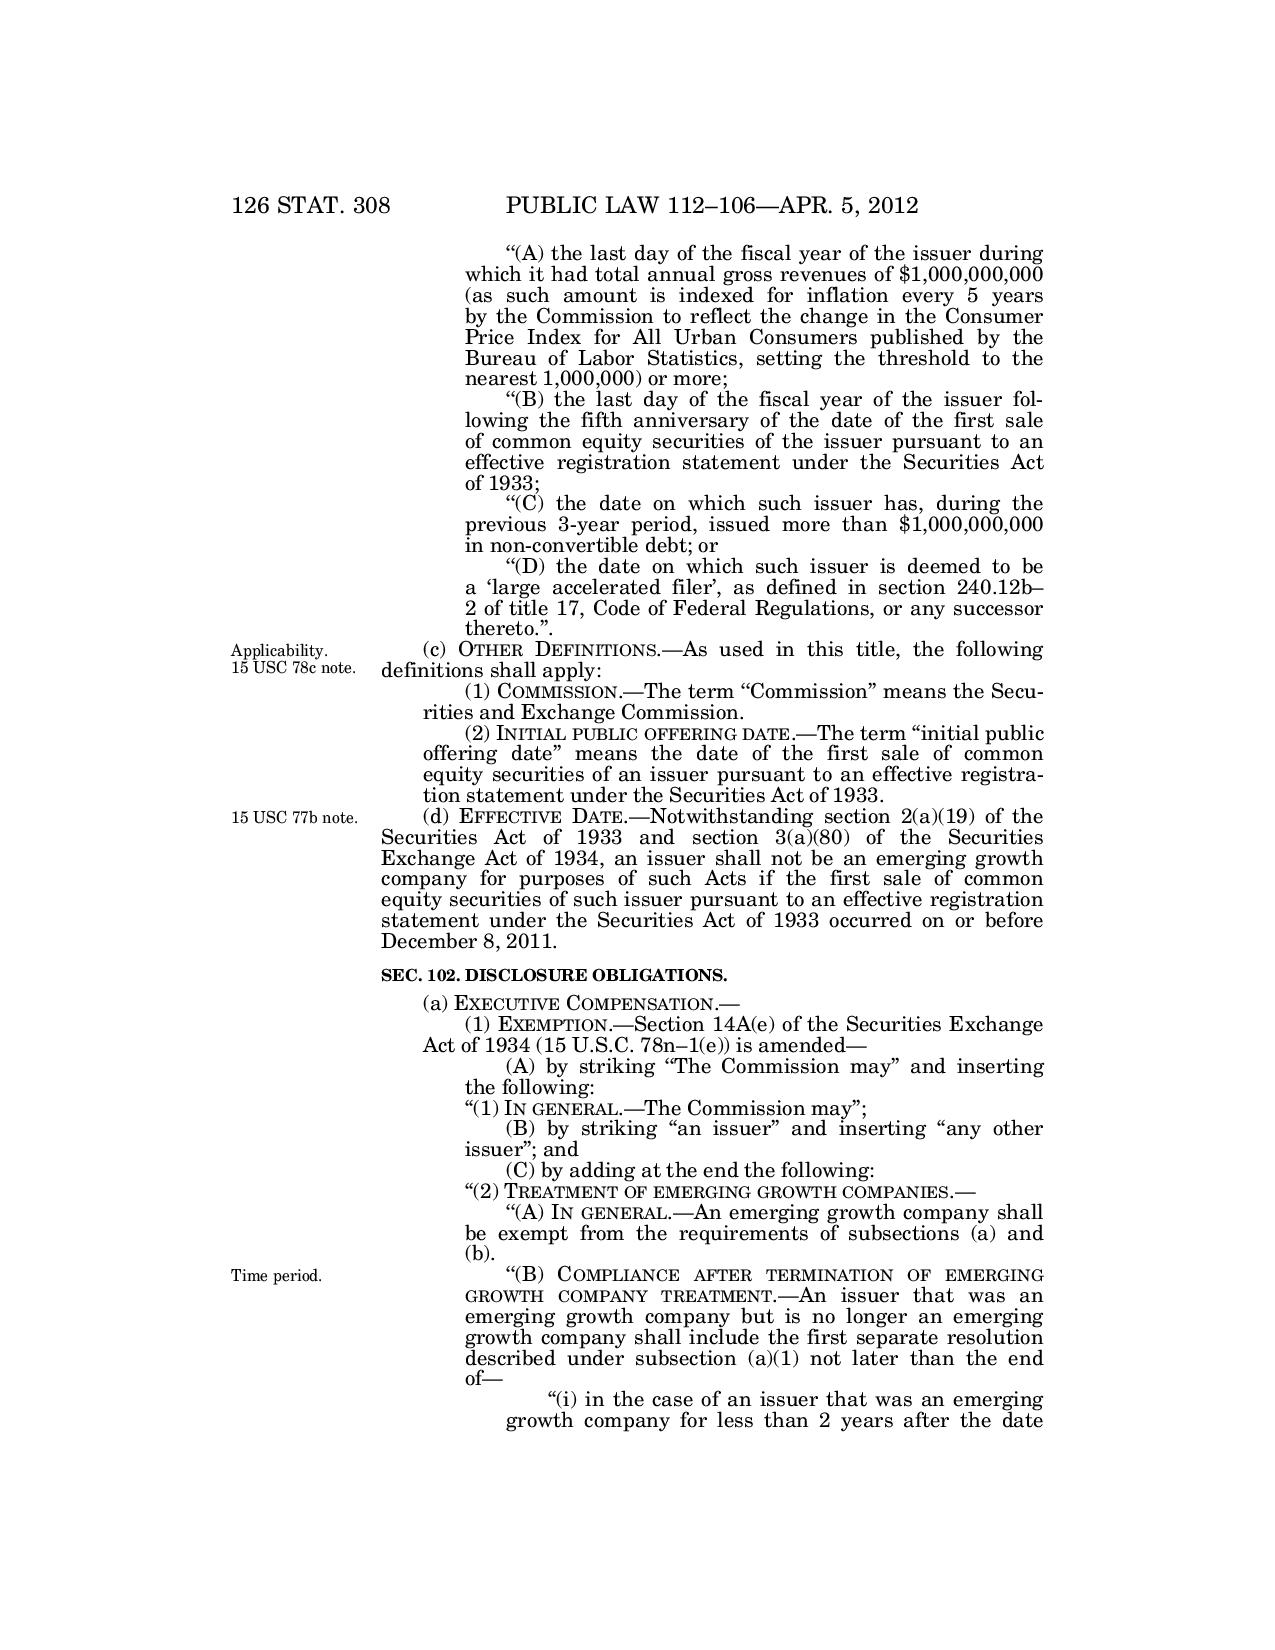 331653864-The-Jumpstart-Our-Business-Startups-Act-JOBS-Act-April-5-of-2012-page-004.jpg